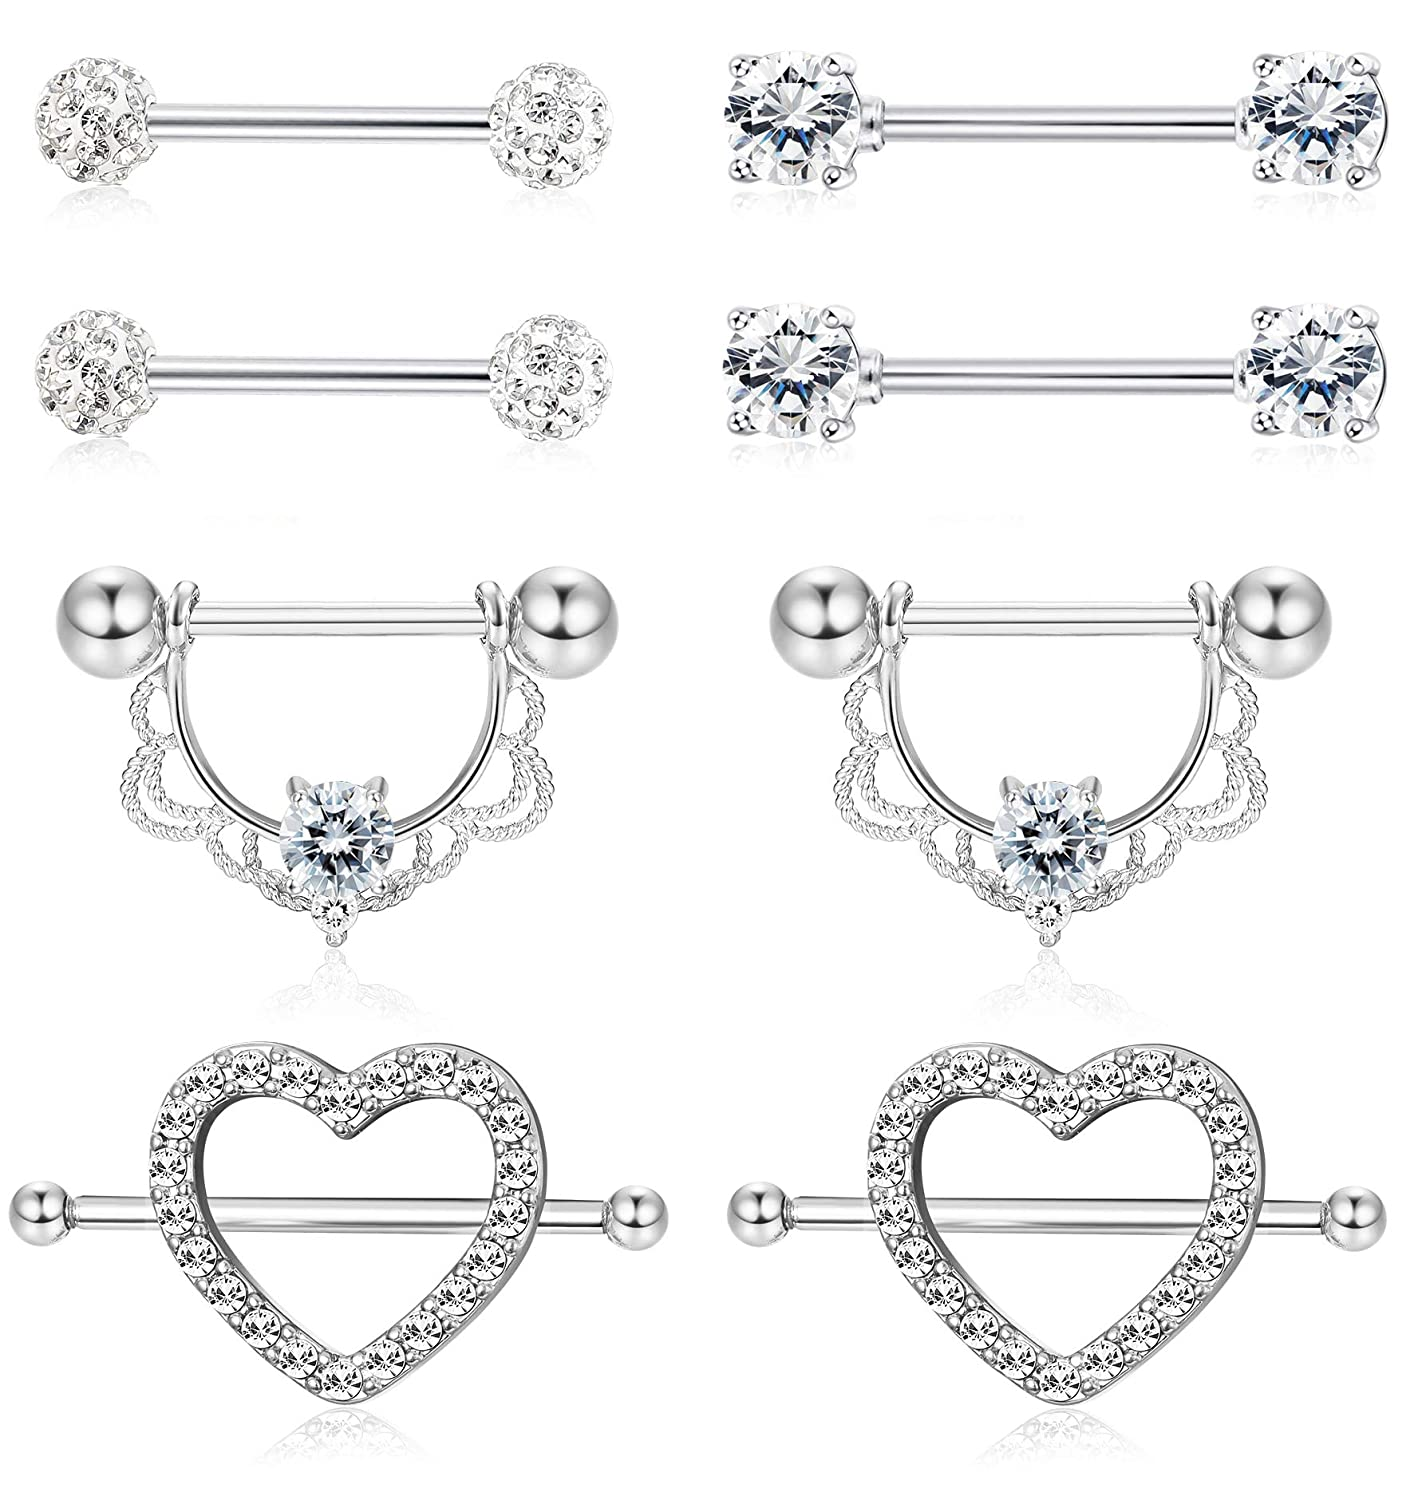 ORAZIO 4 Pairs 14G Stainless Steel Nipplerings Nipple Tongue Rings CZ Opal Barbell Body Piercing Jewelry CC52-4PBL